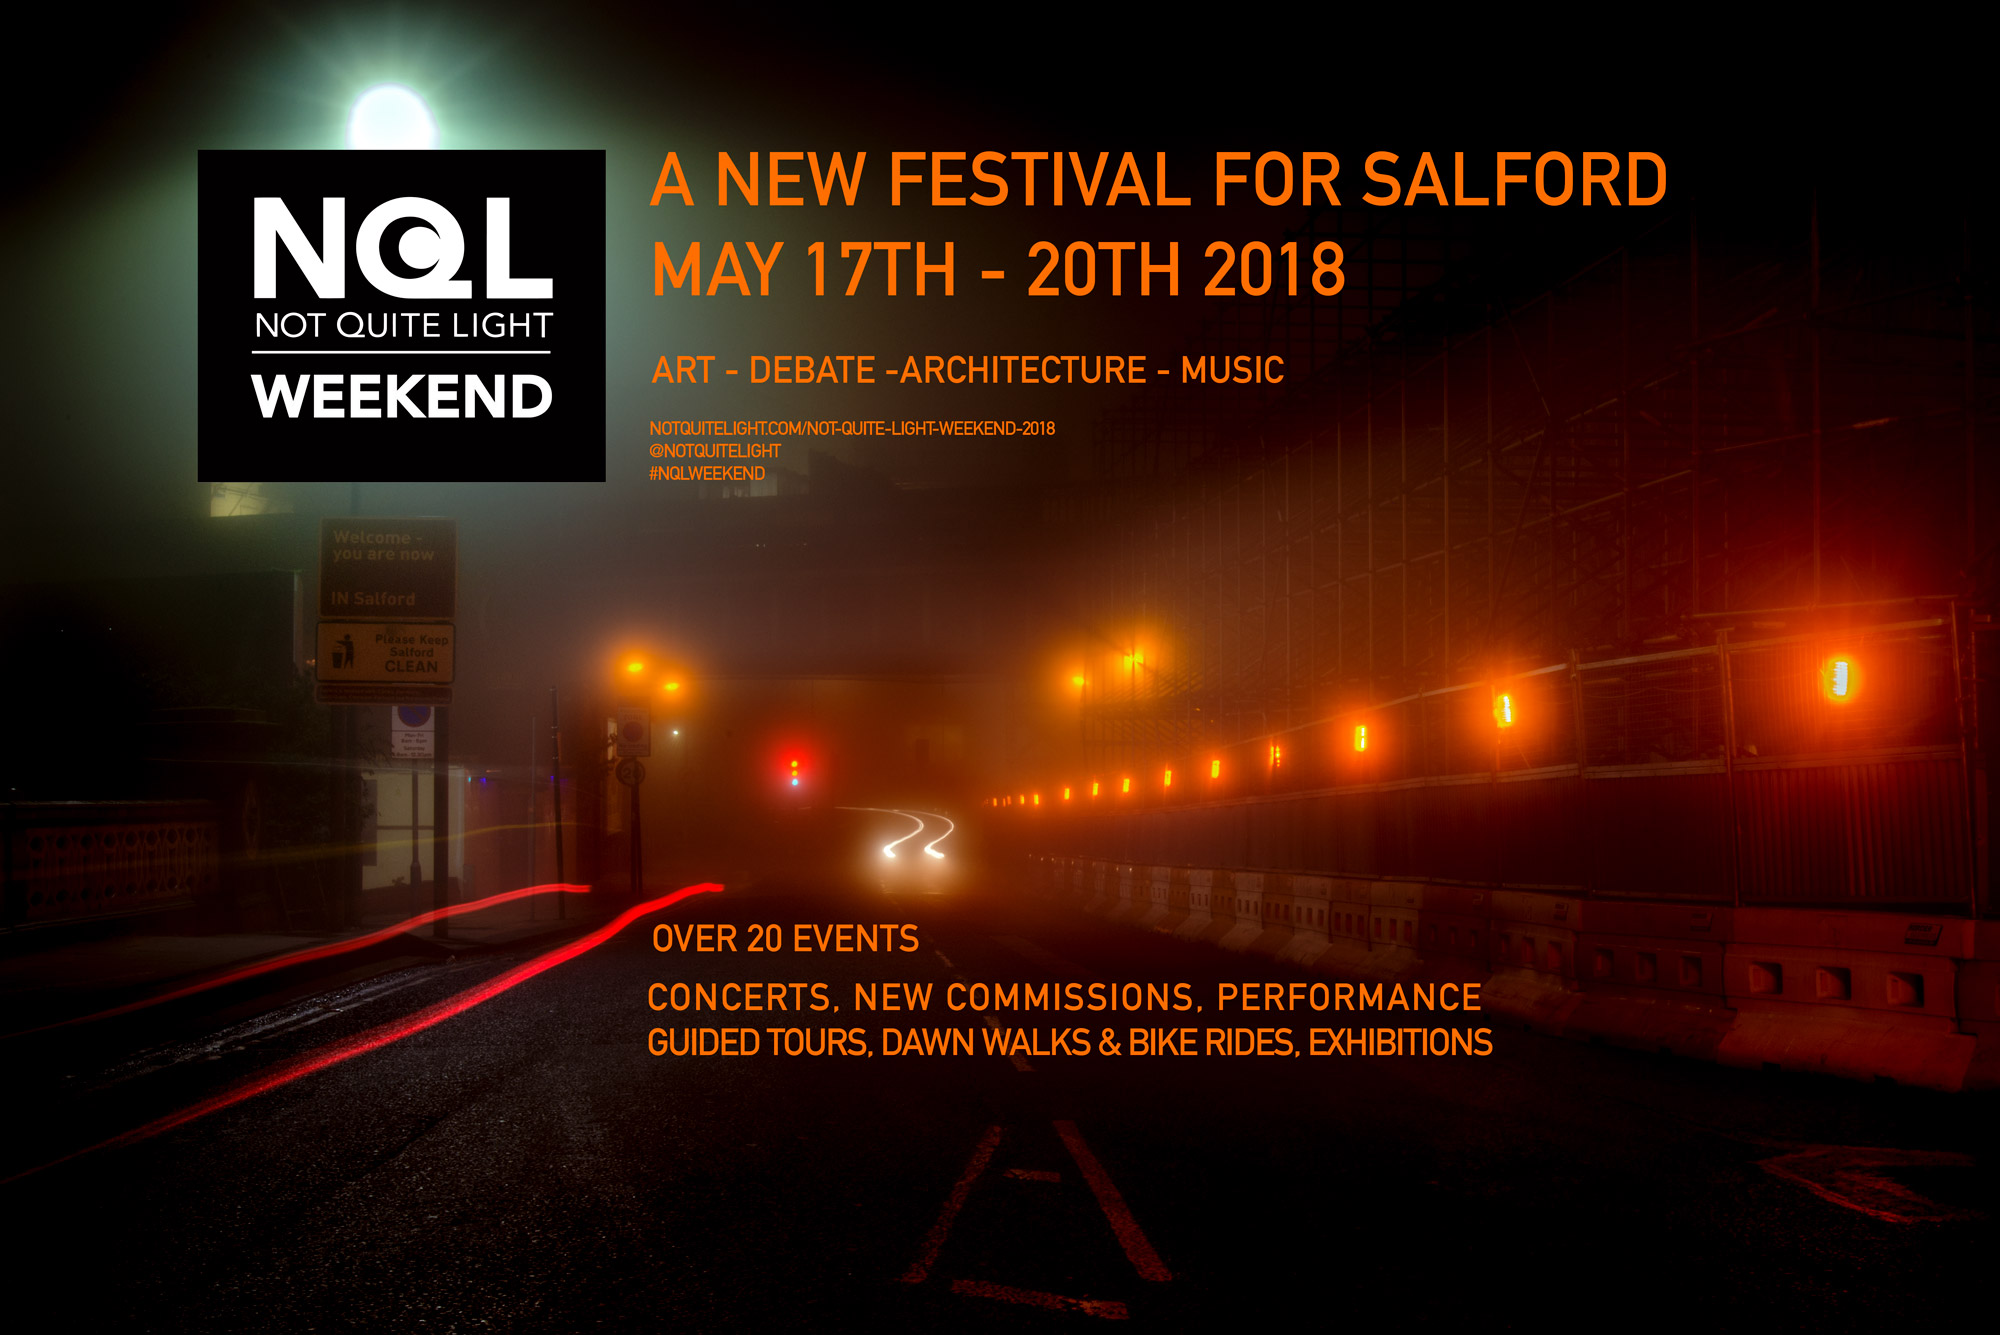 not quite light weekend 2018 salford events may arts